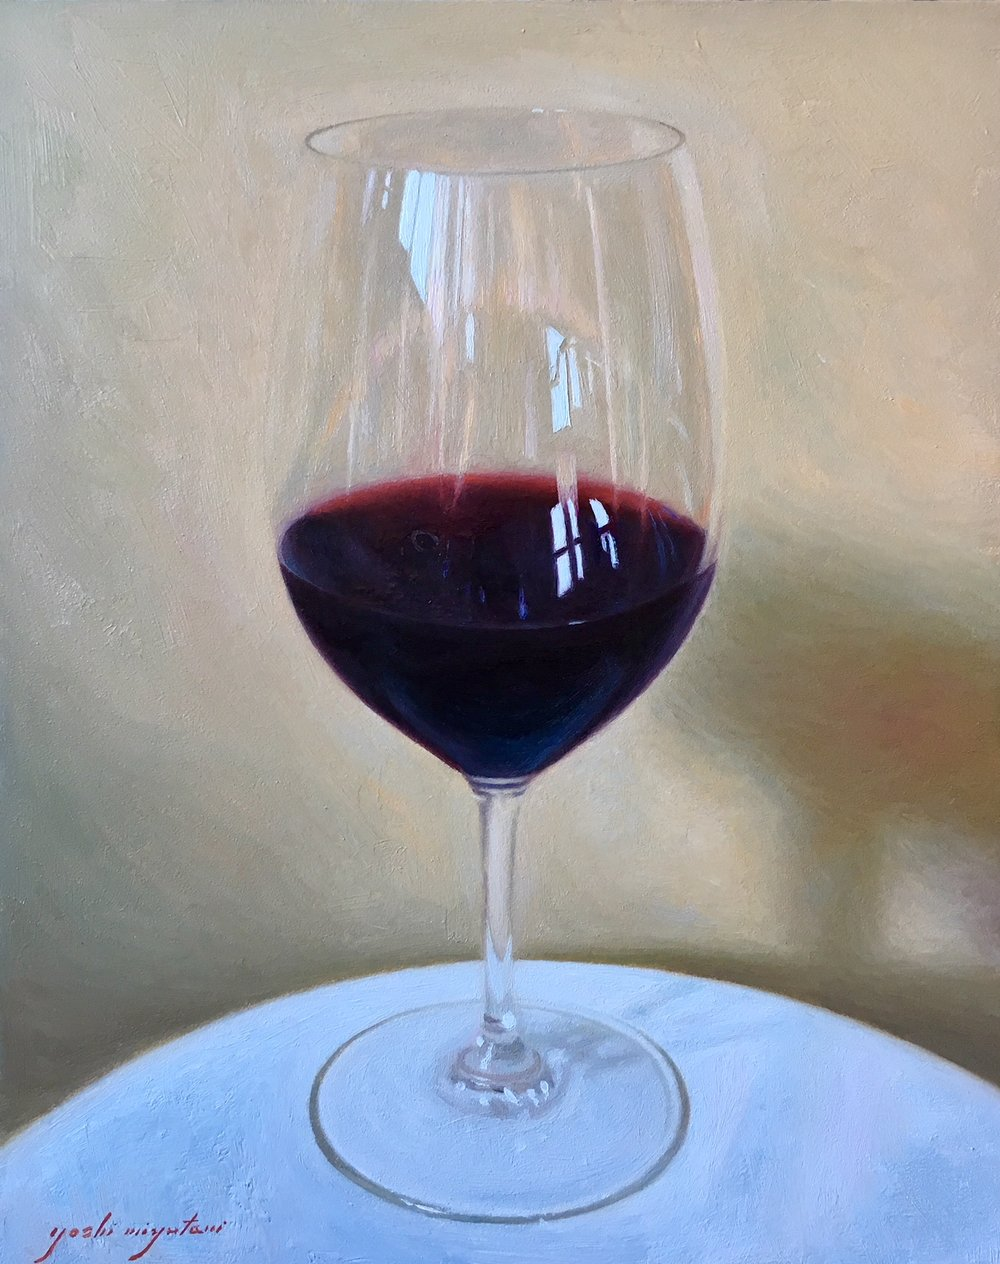 Glass of Bordeaux